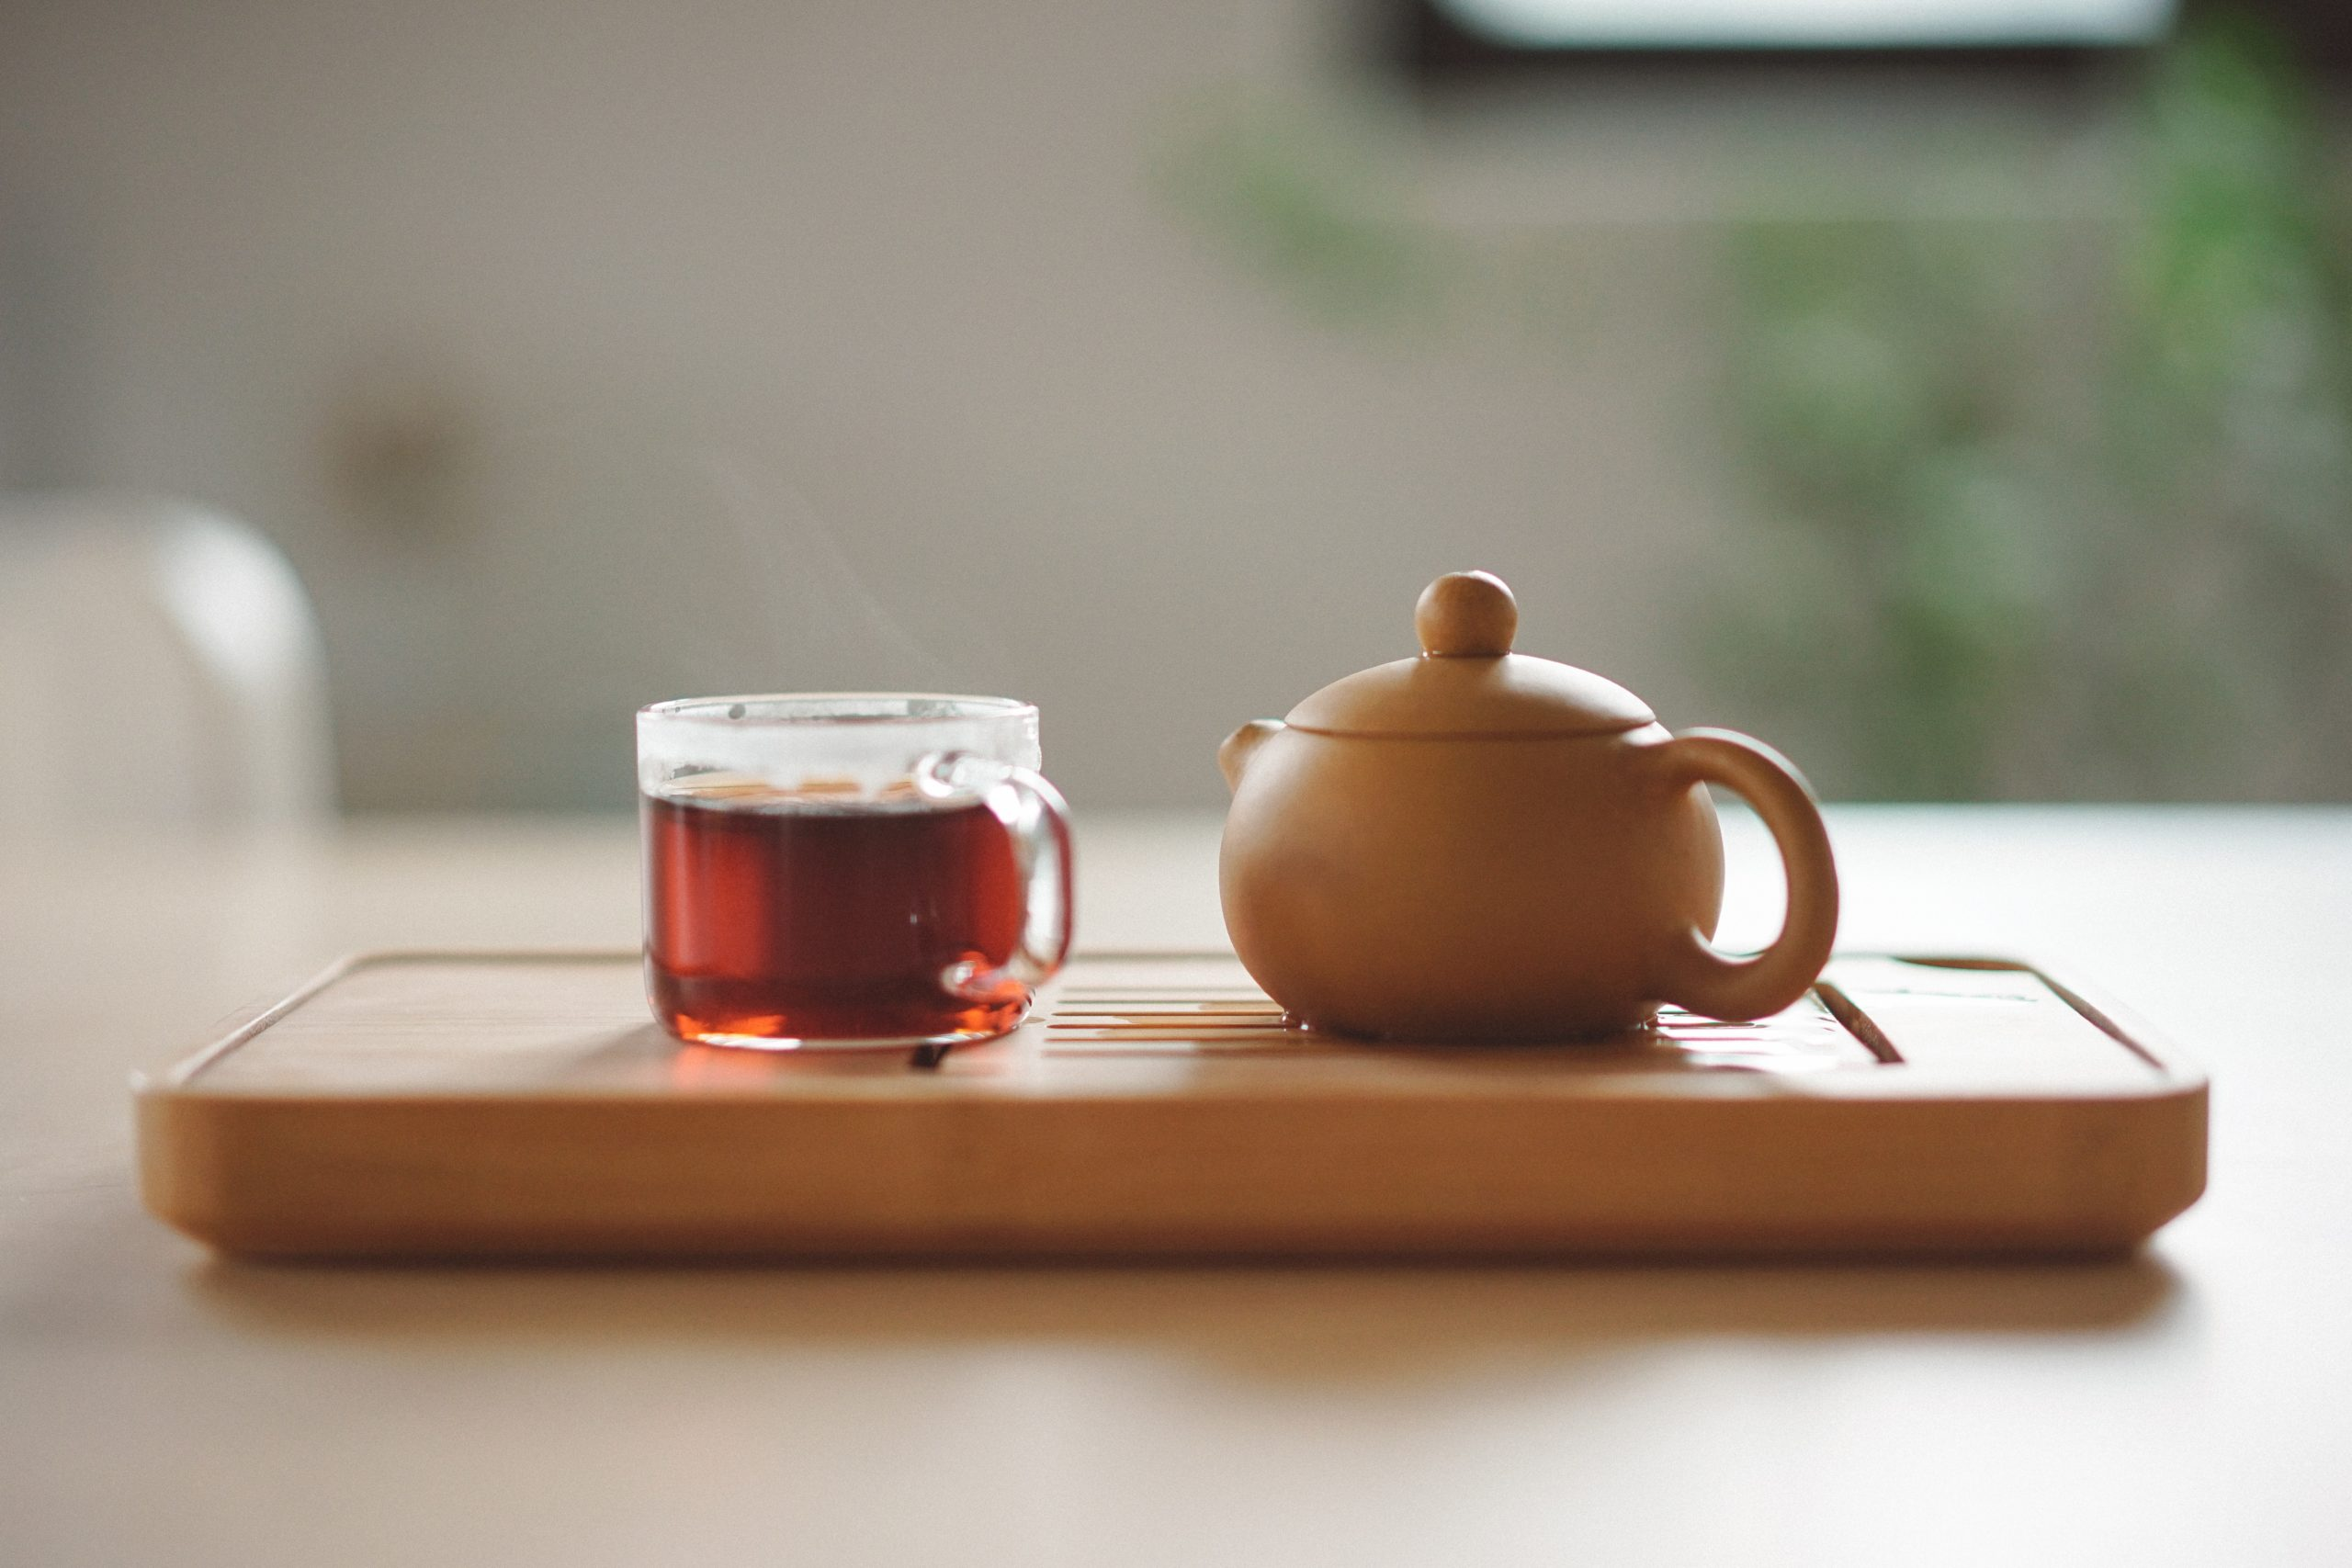 A mug of tea and a tea pot on a serving tray.